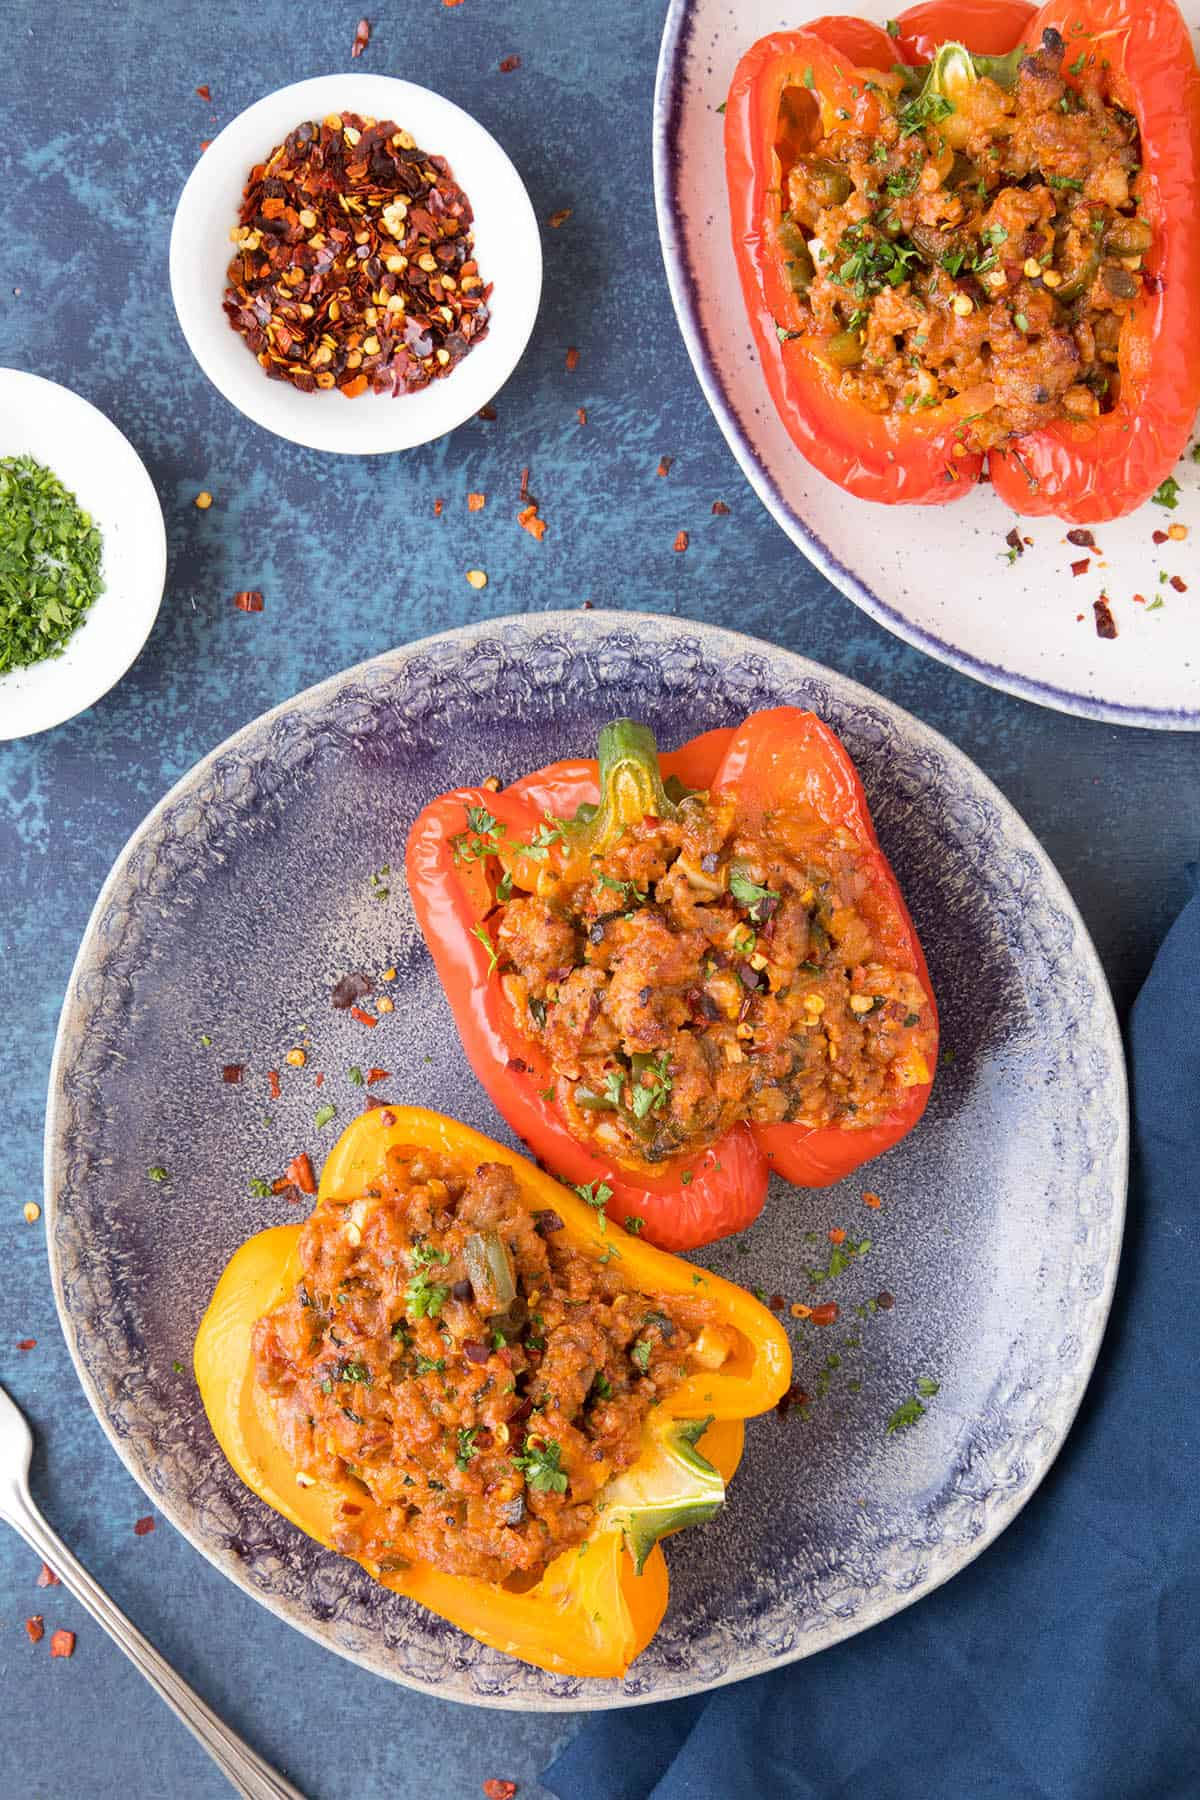 These Italian Sausage Stuffed Peppers are plated and ready to eat.